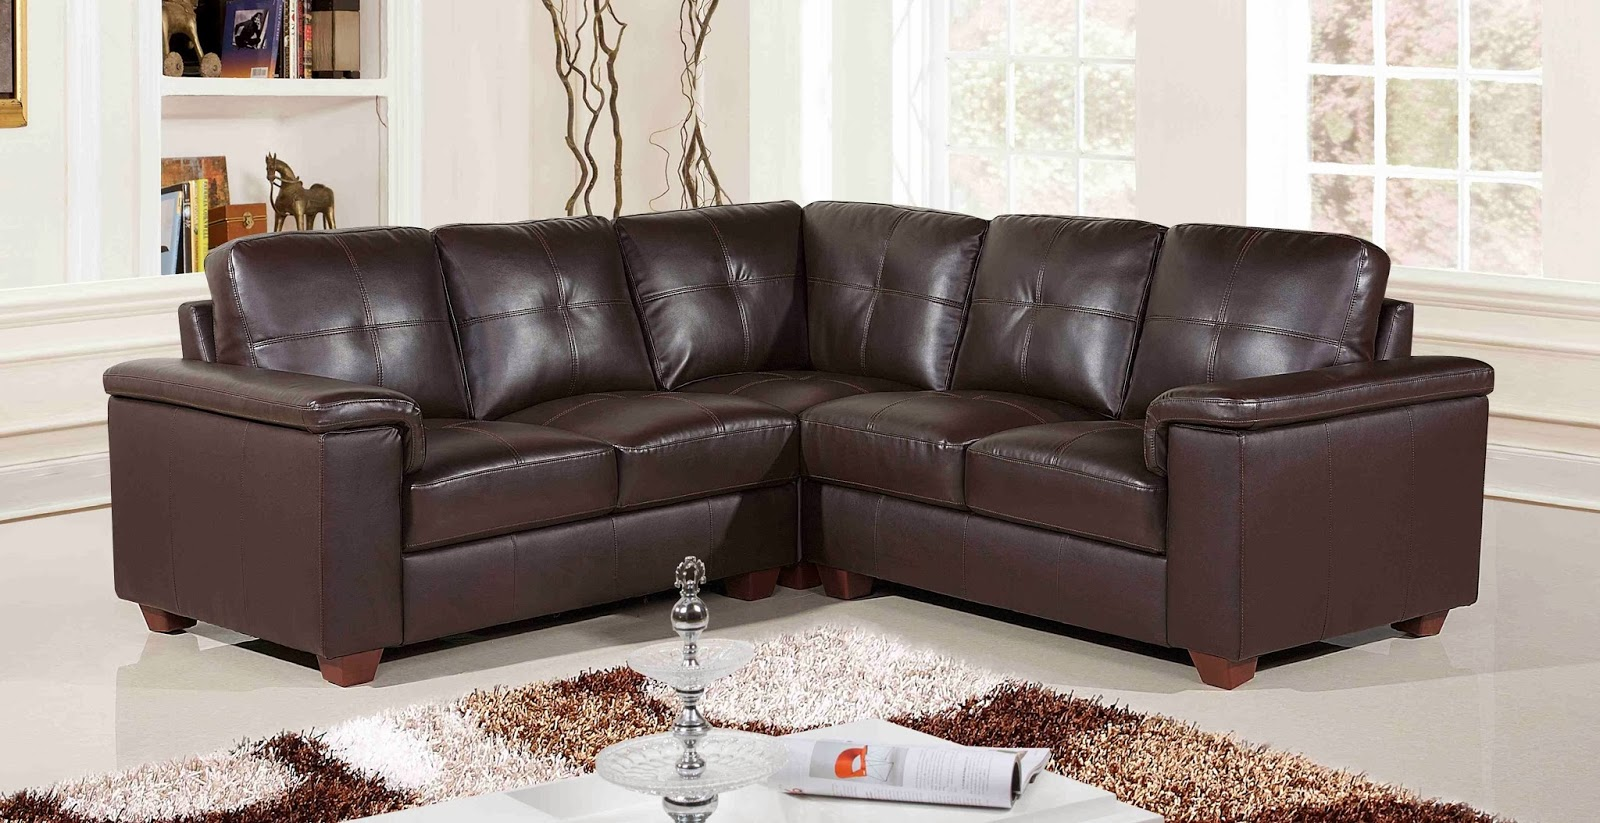 Leather Sofas And Furniture